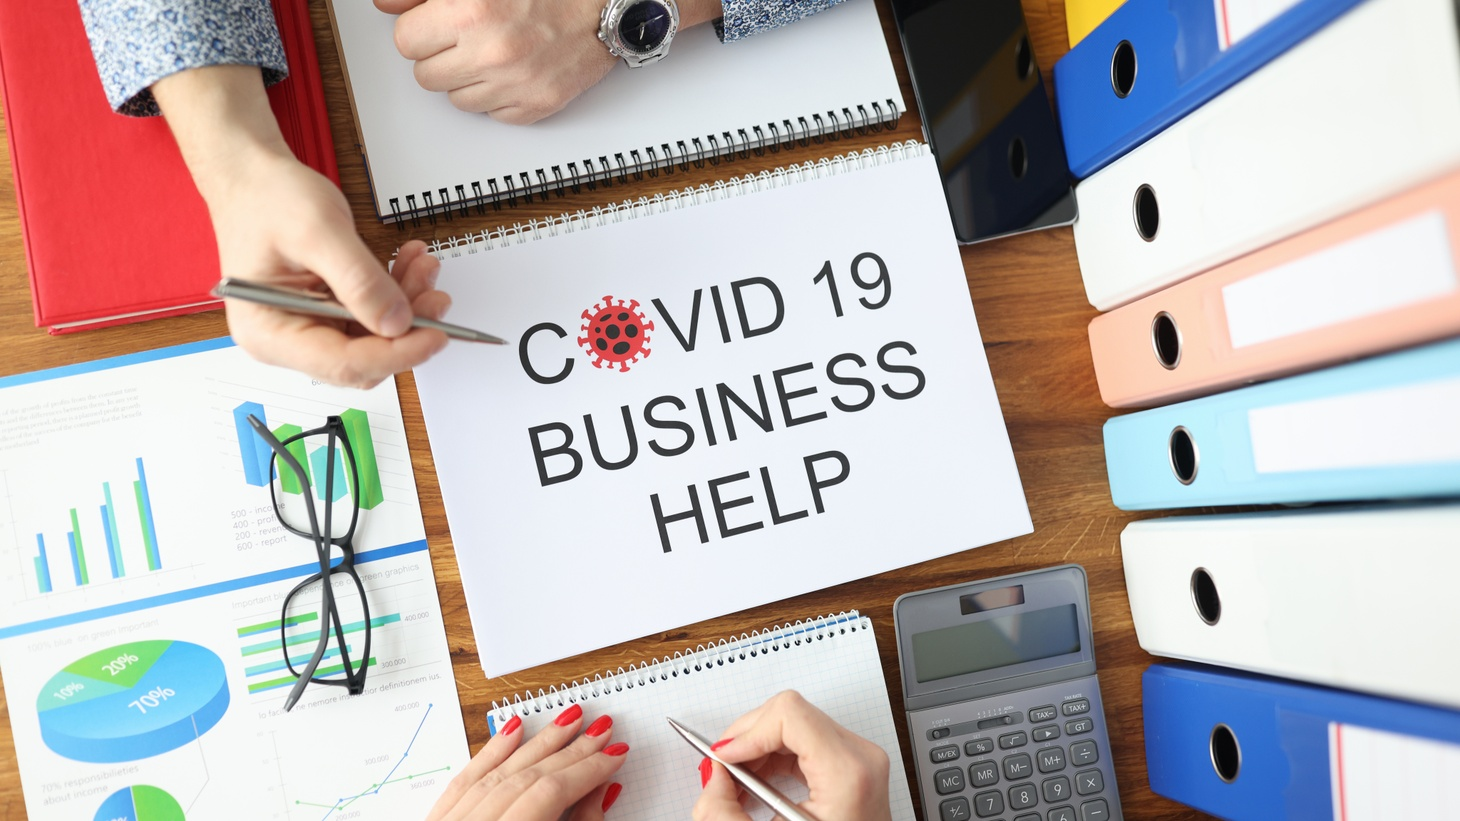 KCRW offers several ways you can help keep your California business humming after more than a year of the COVID-19 pandemic.